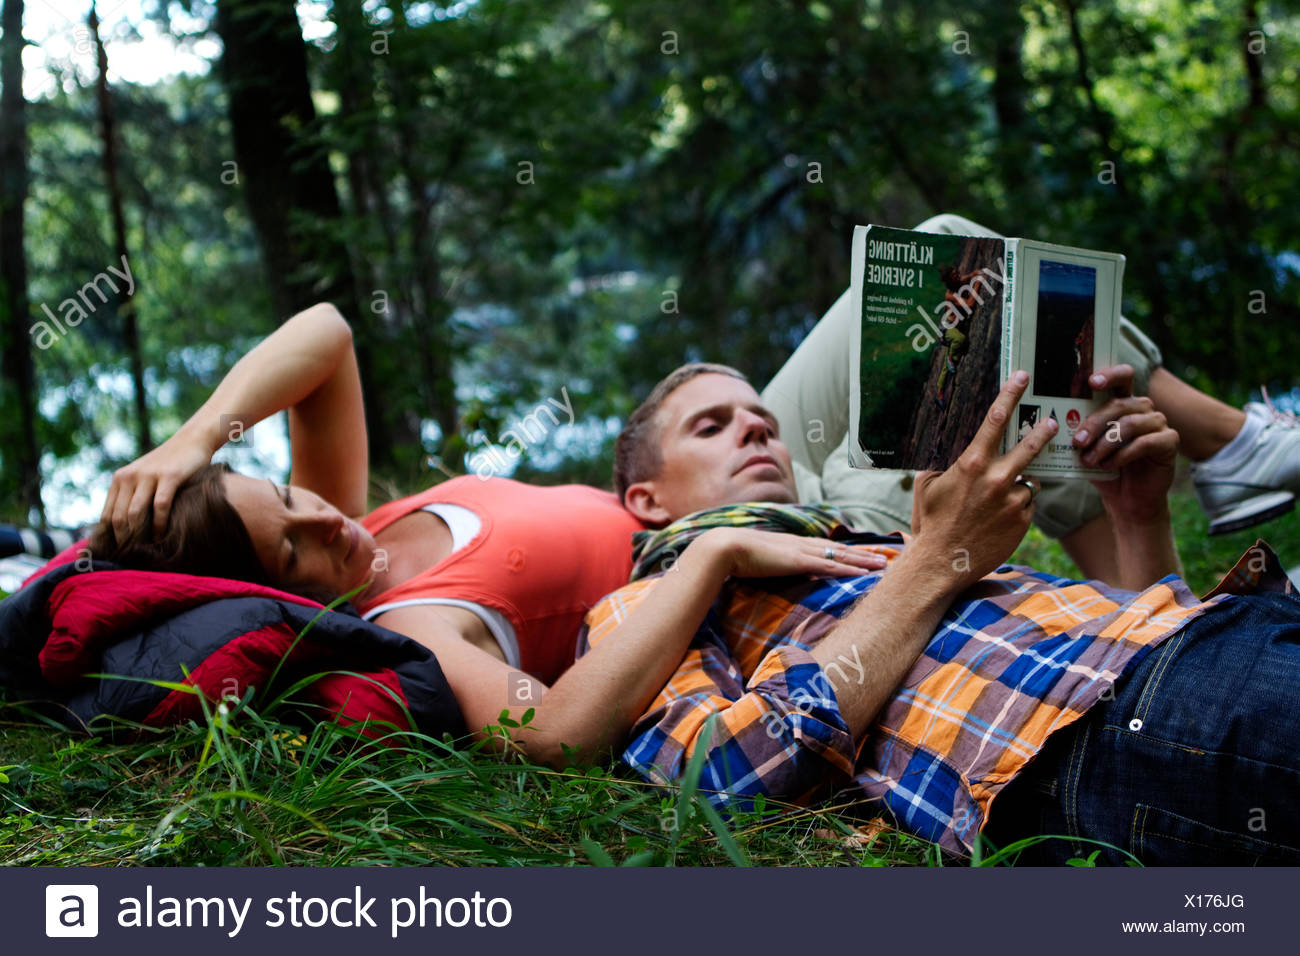 Sweden, Ostergotland, Agelsjon, Hikers lying on grass and reading guidebook - Stock Image